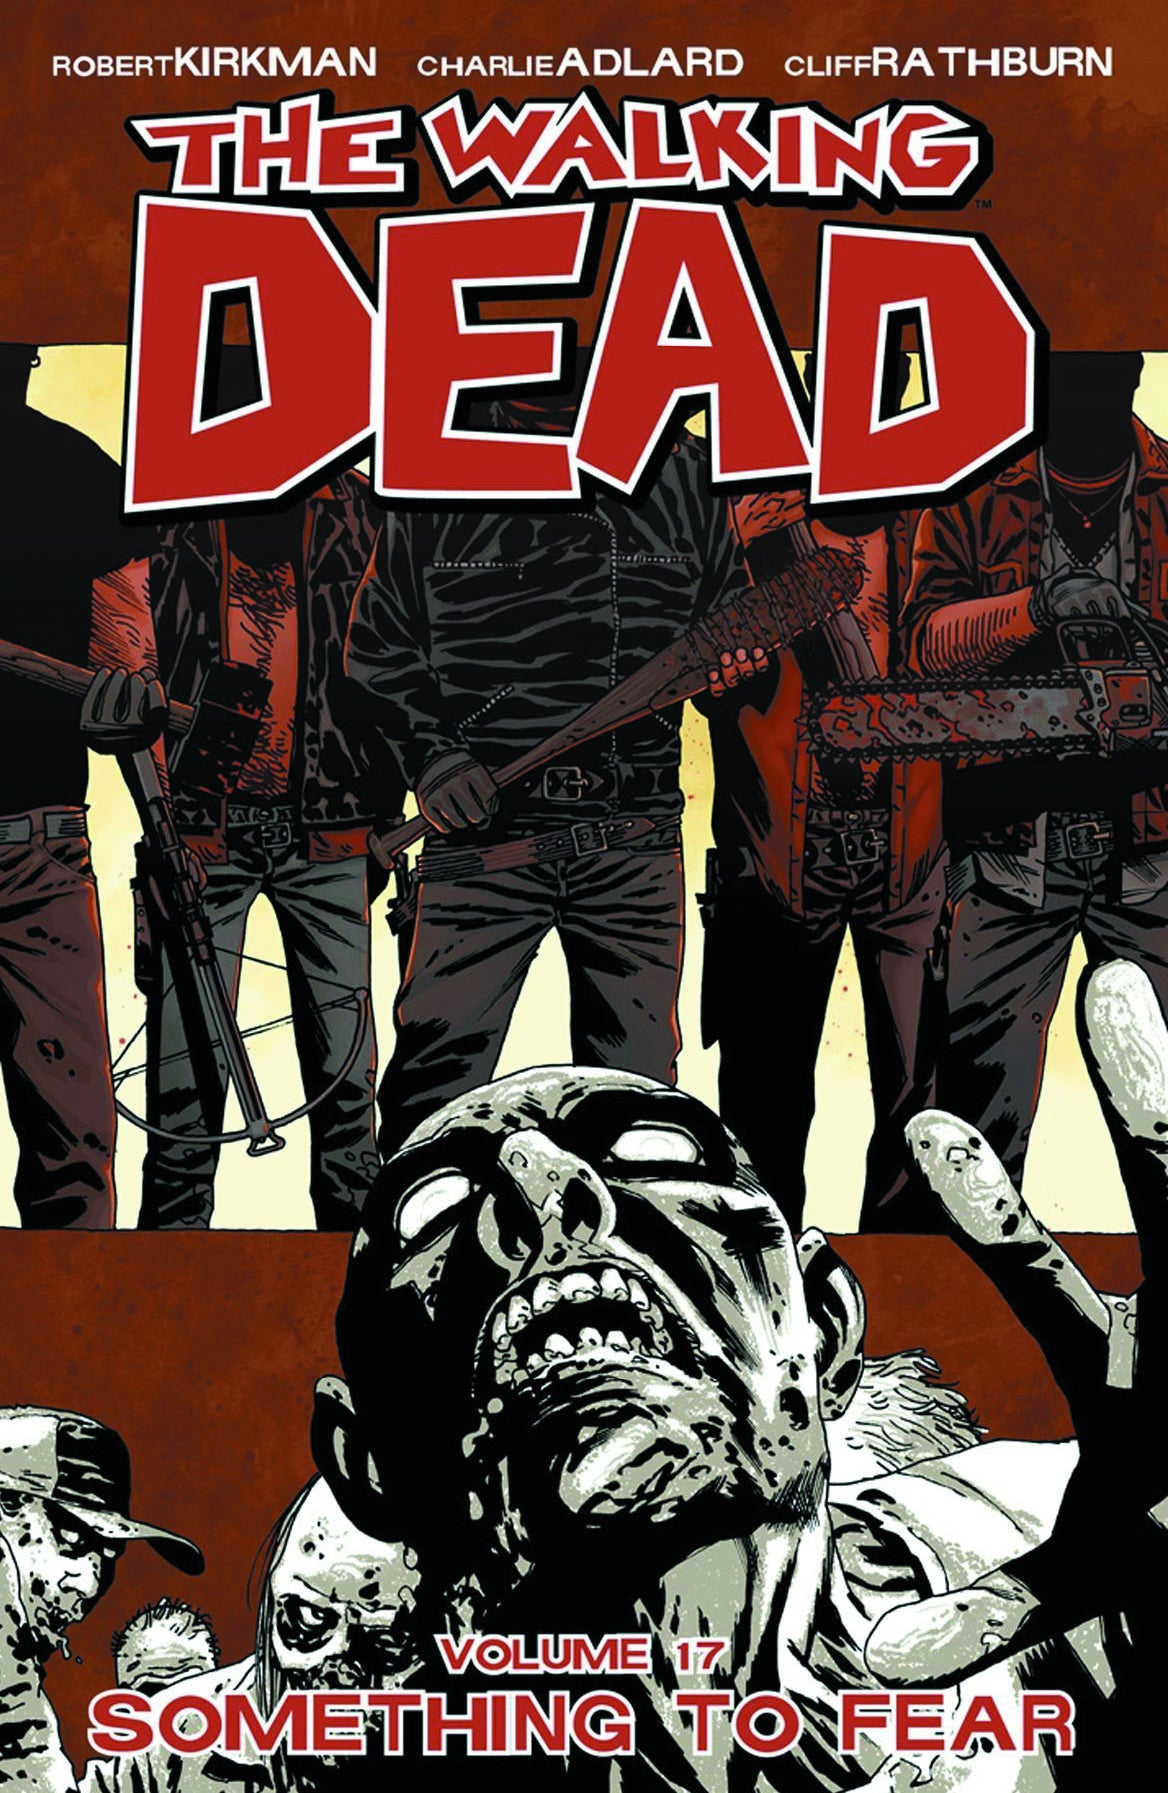 WALKING DEAD TP VOL 17 SOMETHING TO FEAR (MR) | Game Master's Emporium (The New GME)